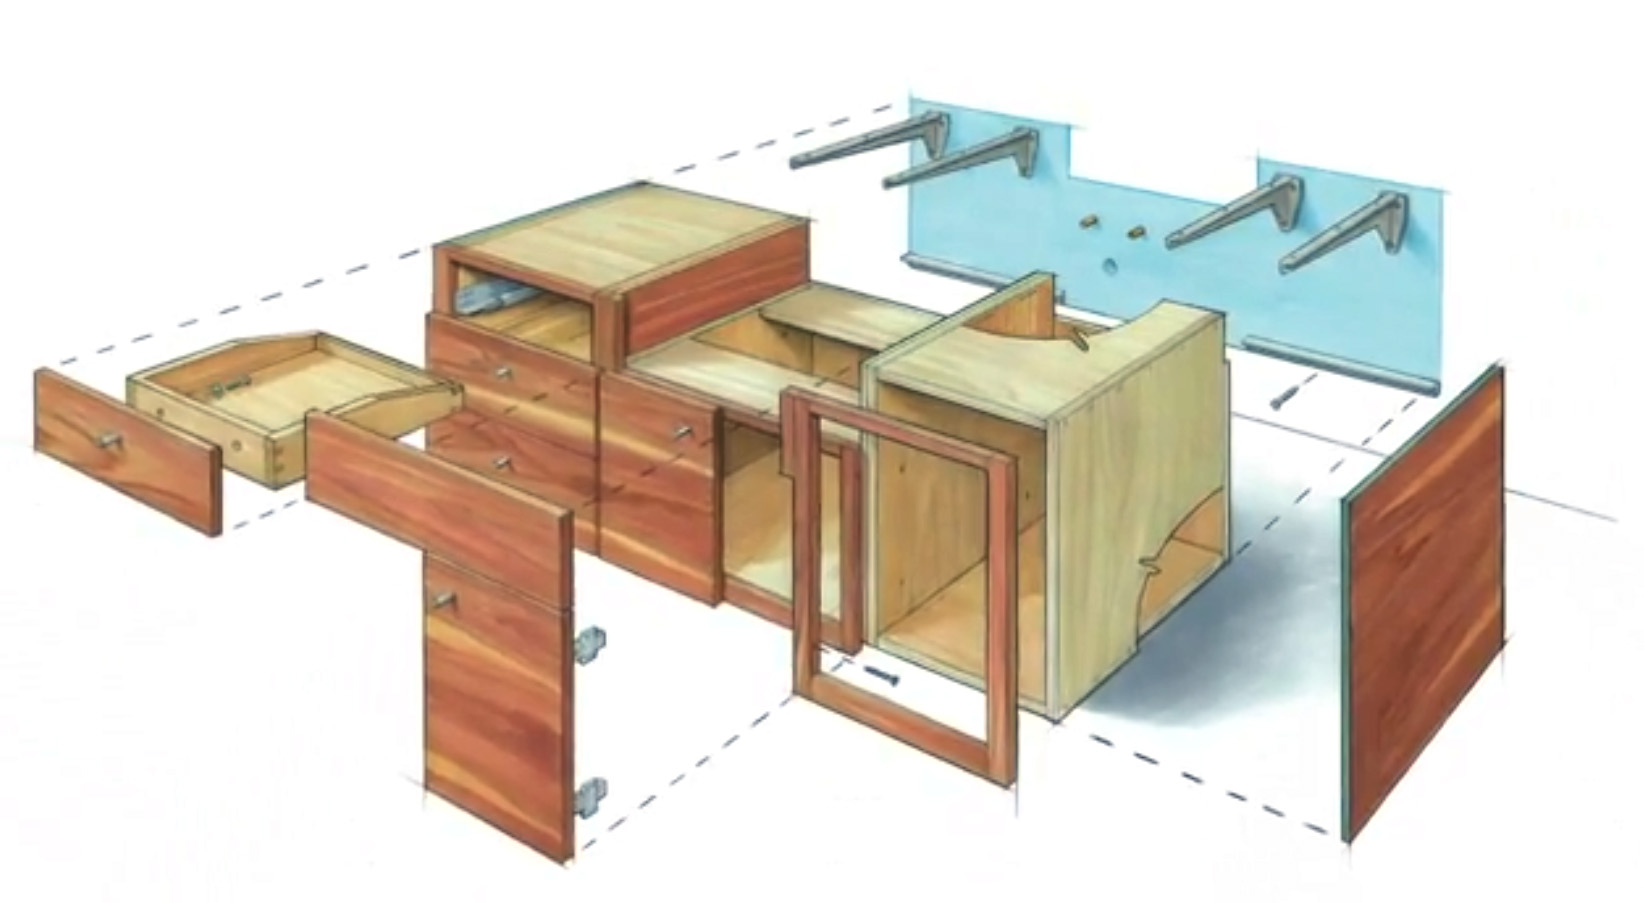 How To Make A Bathroom Vanity Cabinet Video Series How To Build A Floating Vanity